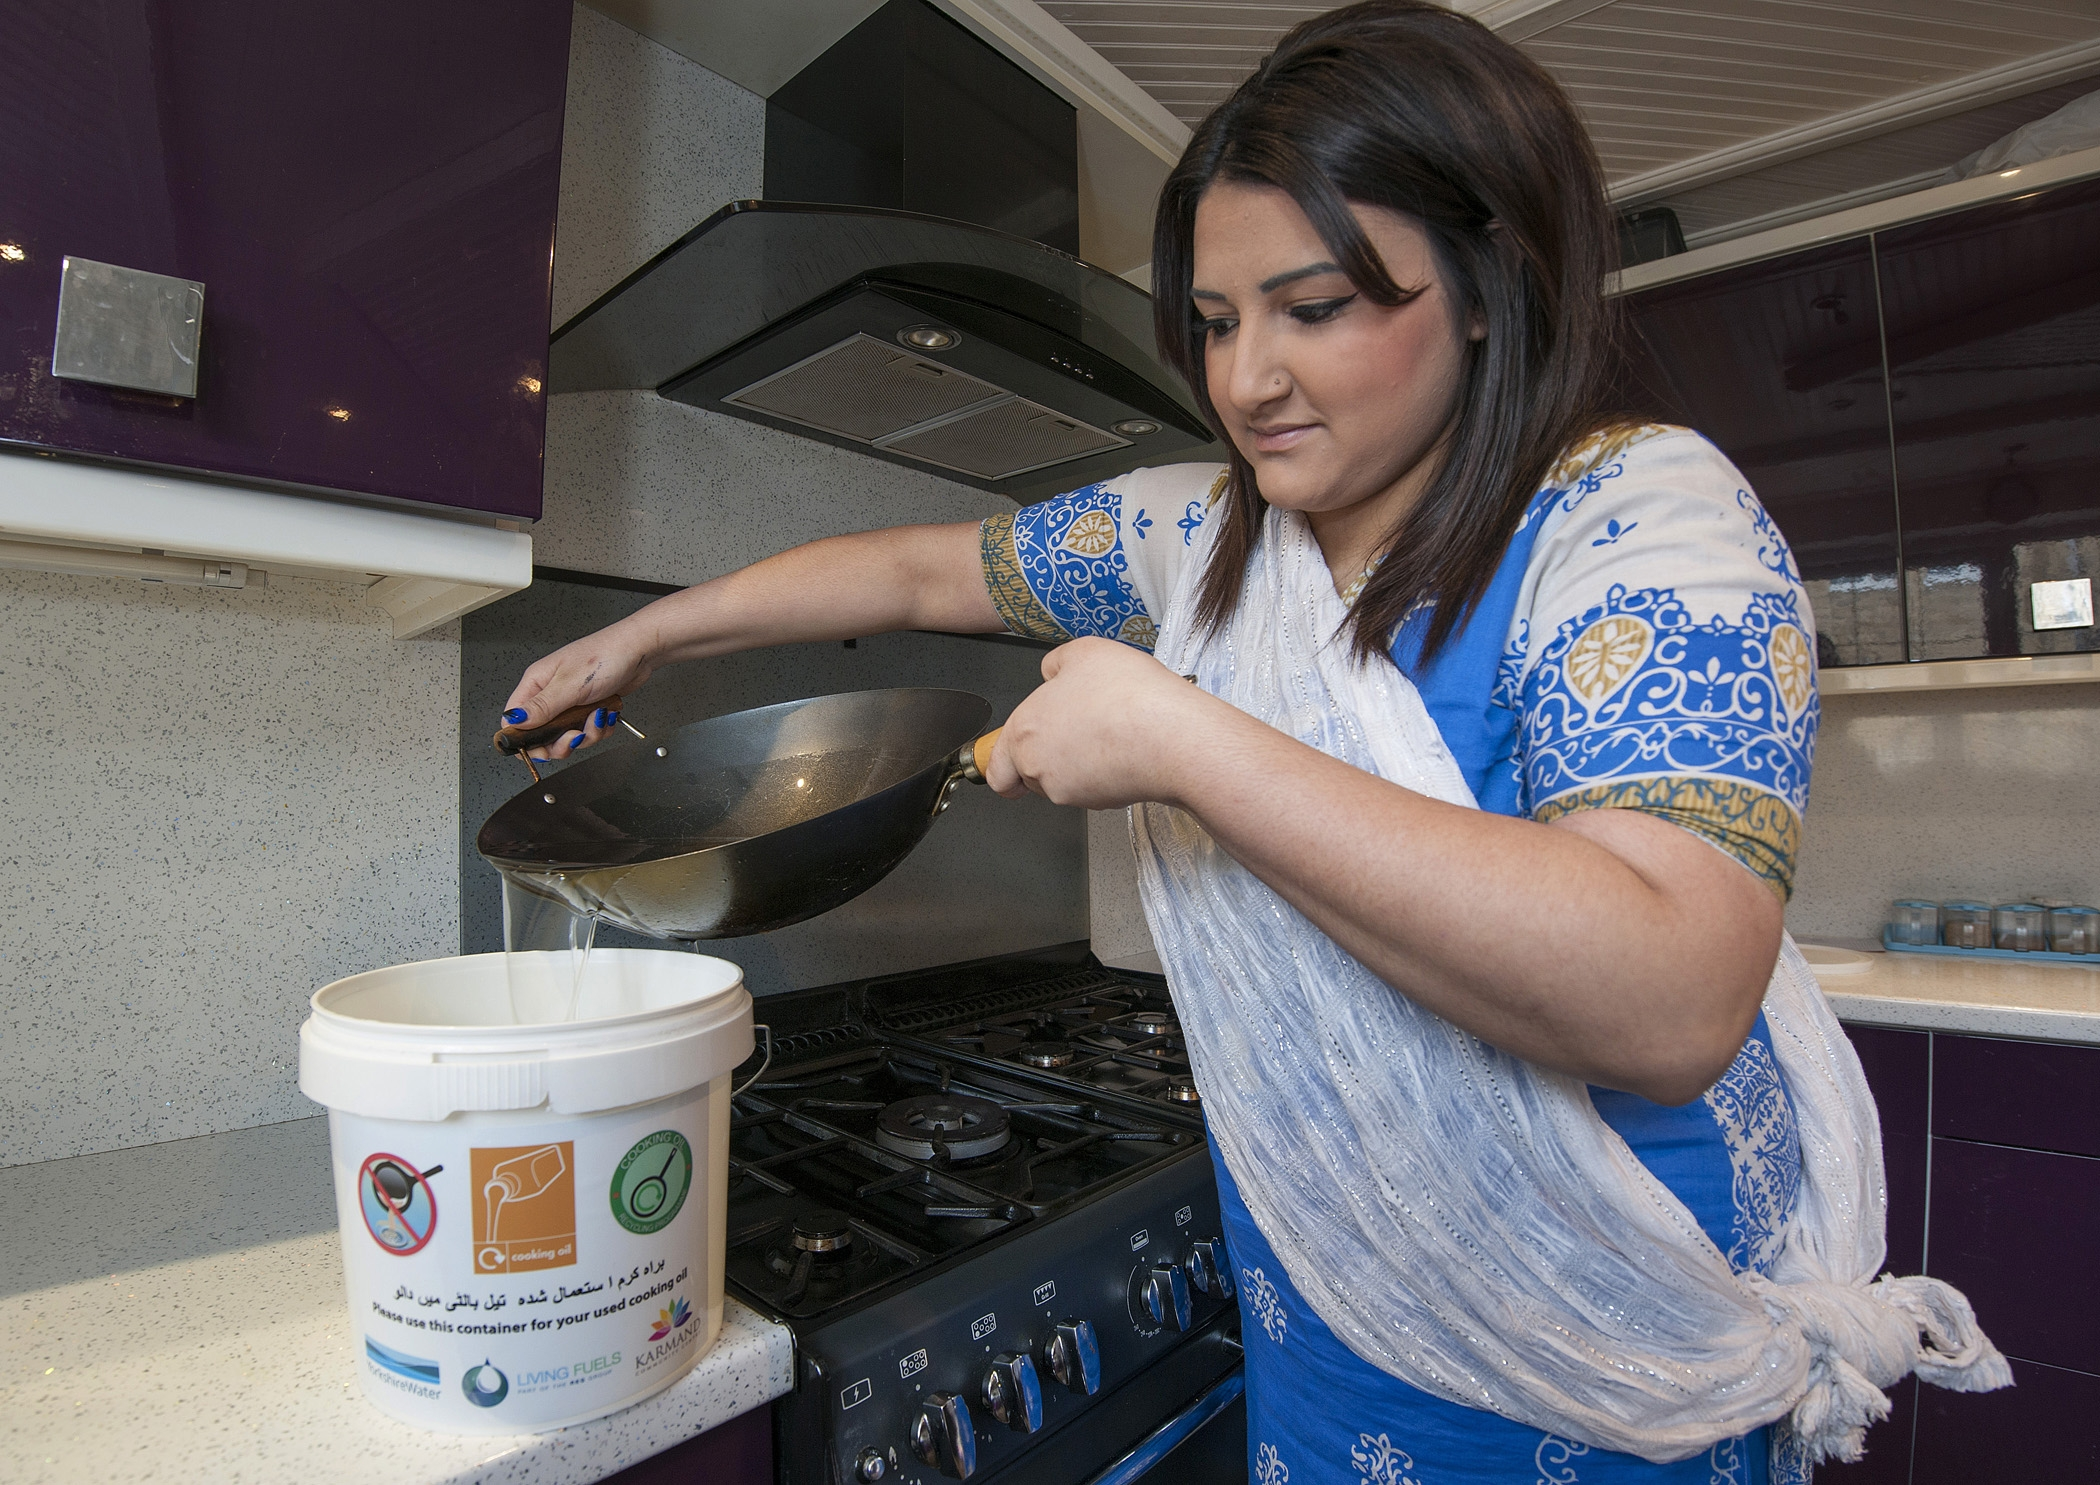 Sra Hussain, 19, from Bradford Moor, taking part in